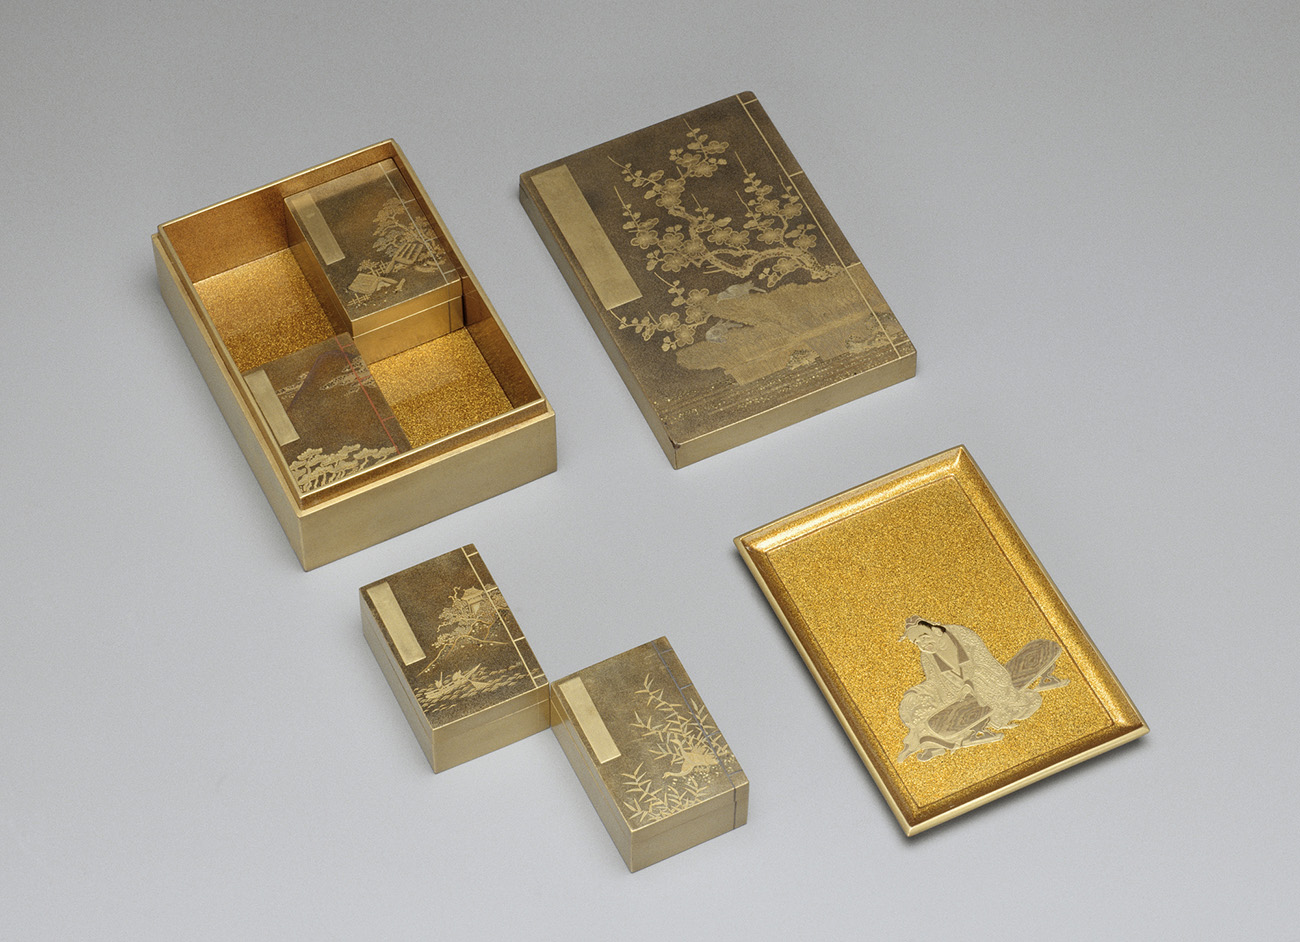 A rectangular box open for display with its contents showing. A tray has been removed and four smaller boxes fit underneath.